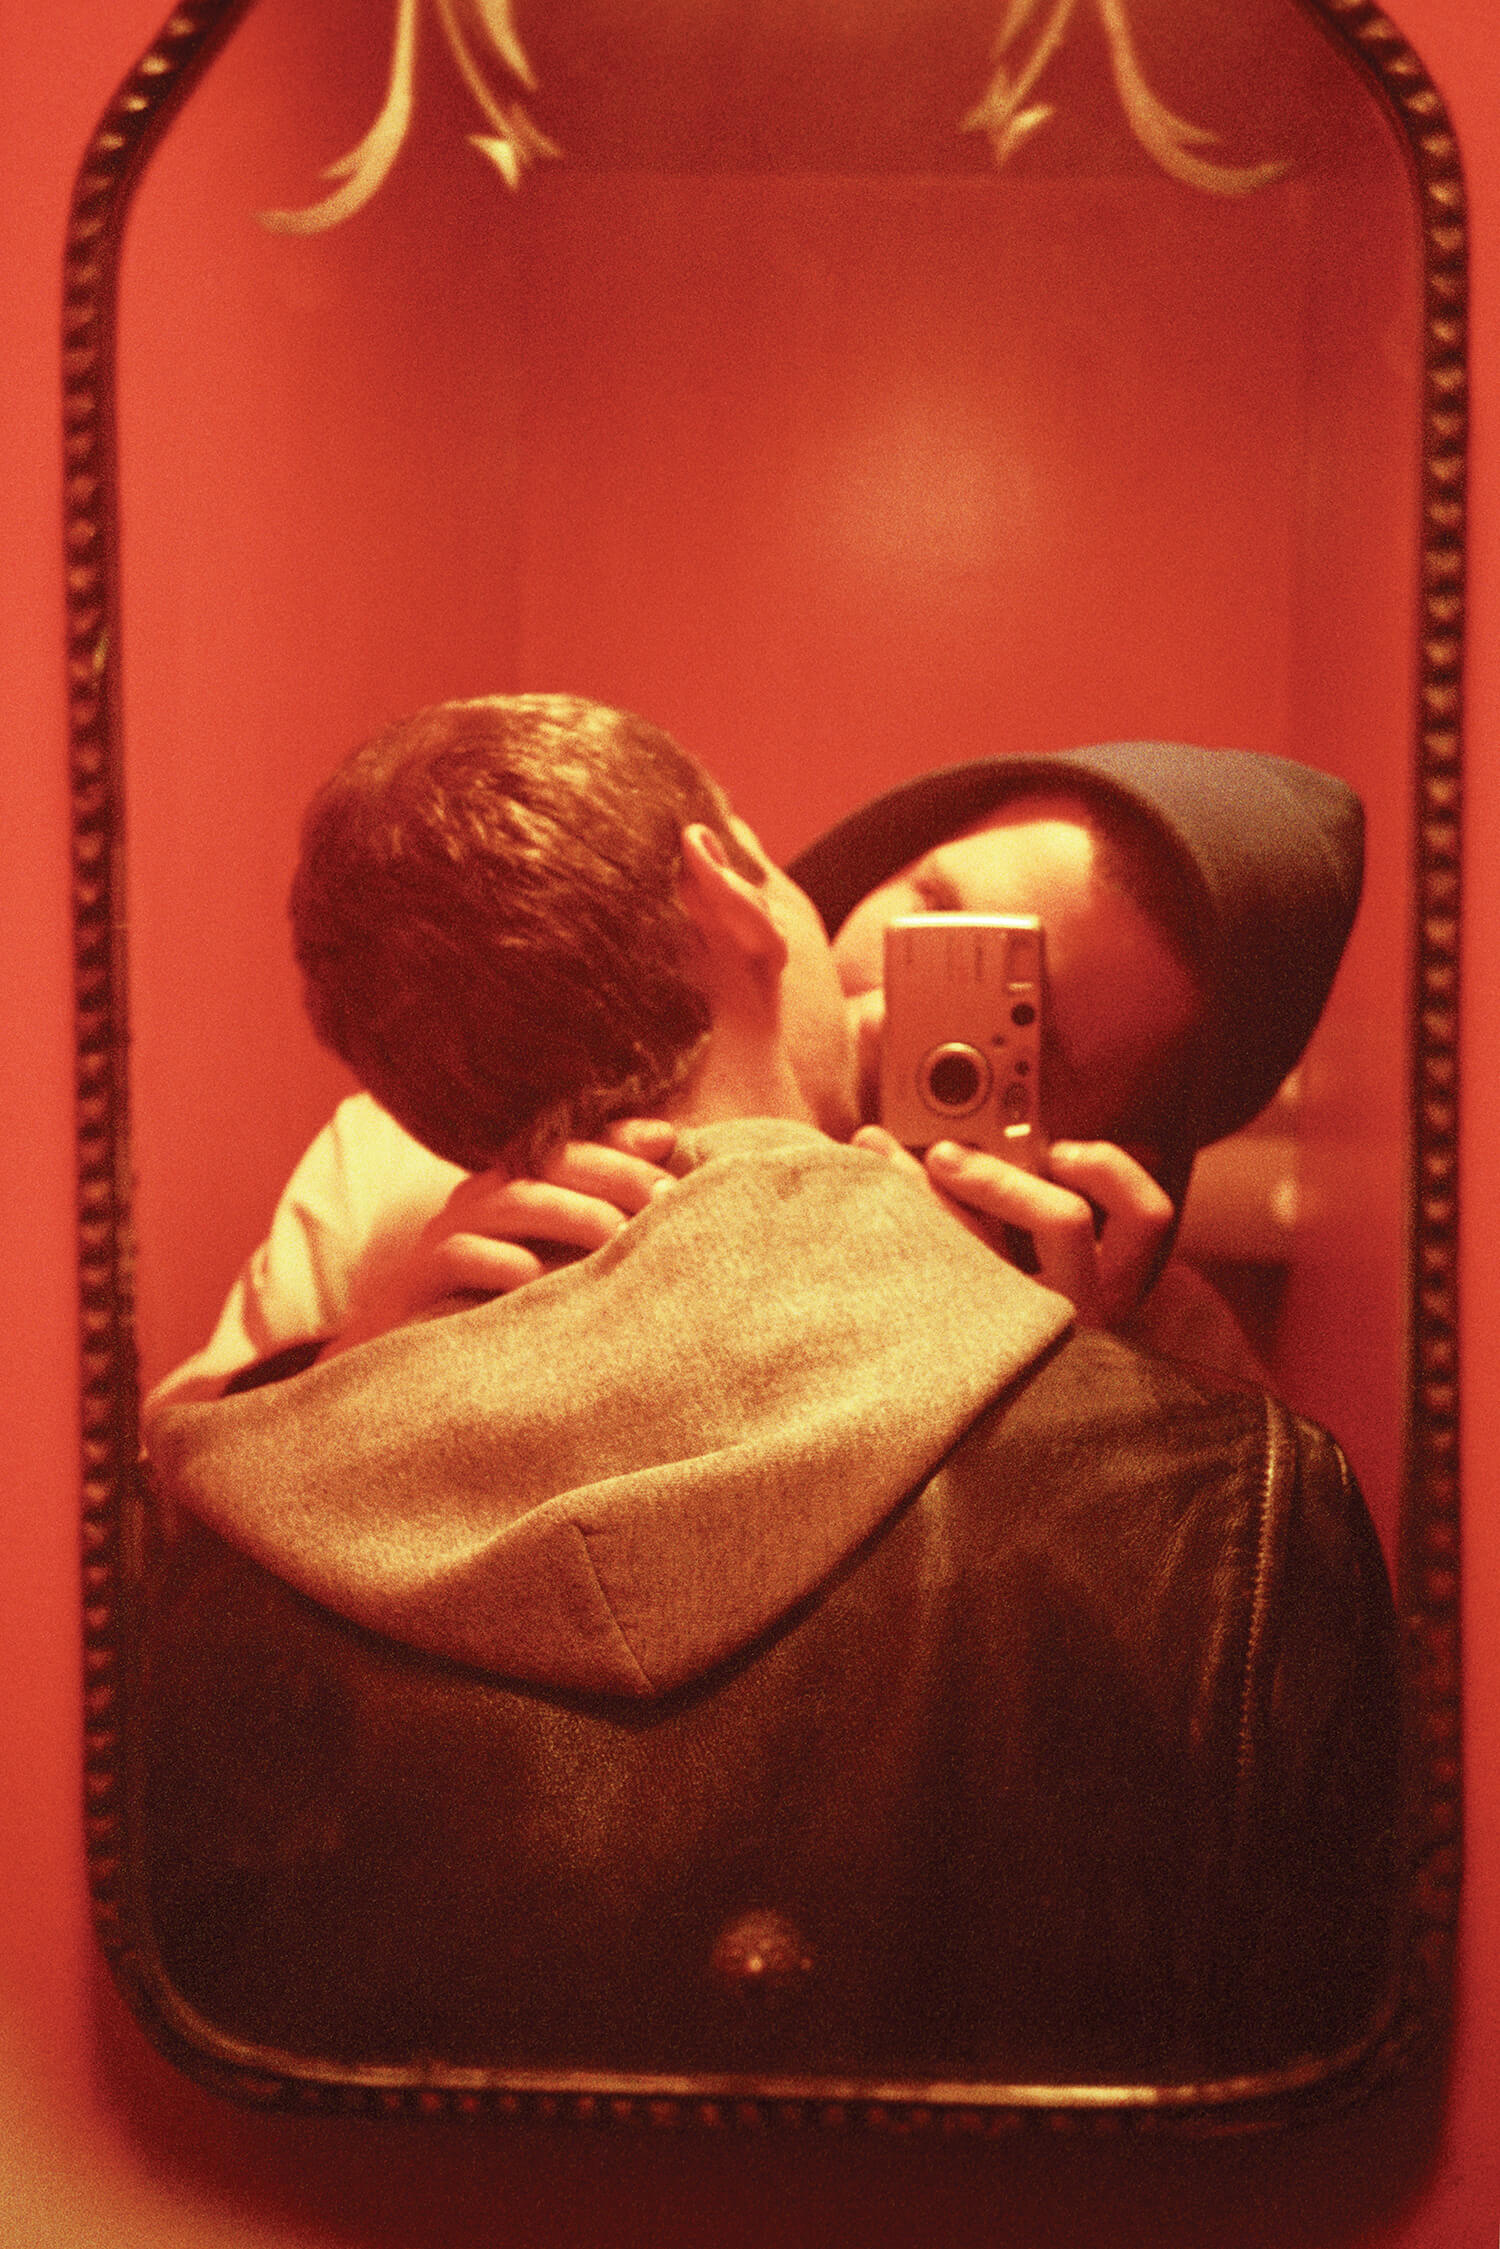 Red Mirror, 1999. C-print, 45 x 30 inches. © Ryan McGinley.